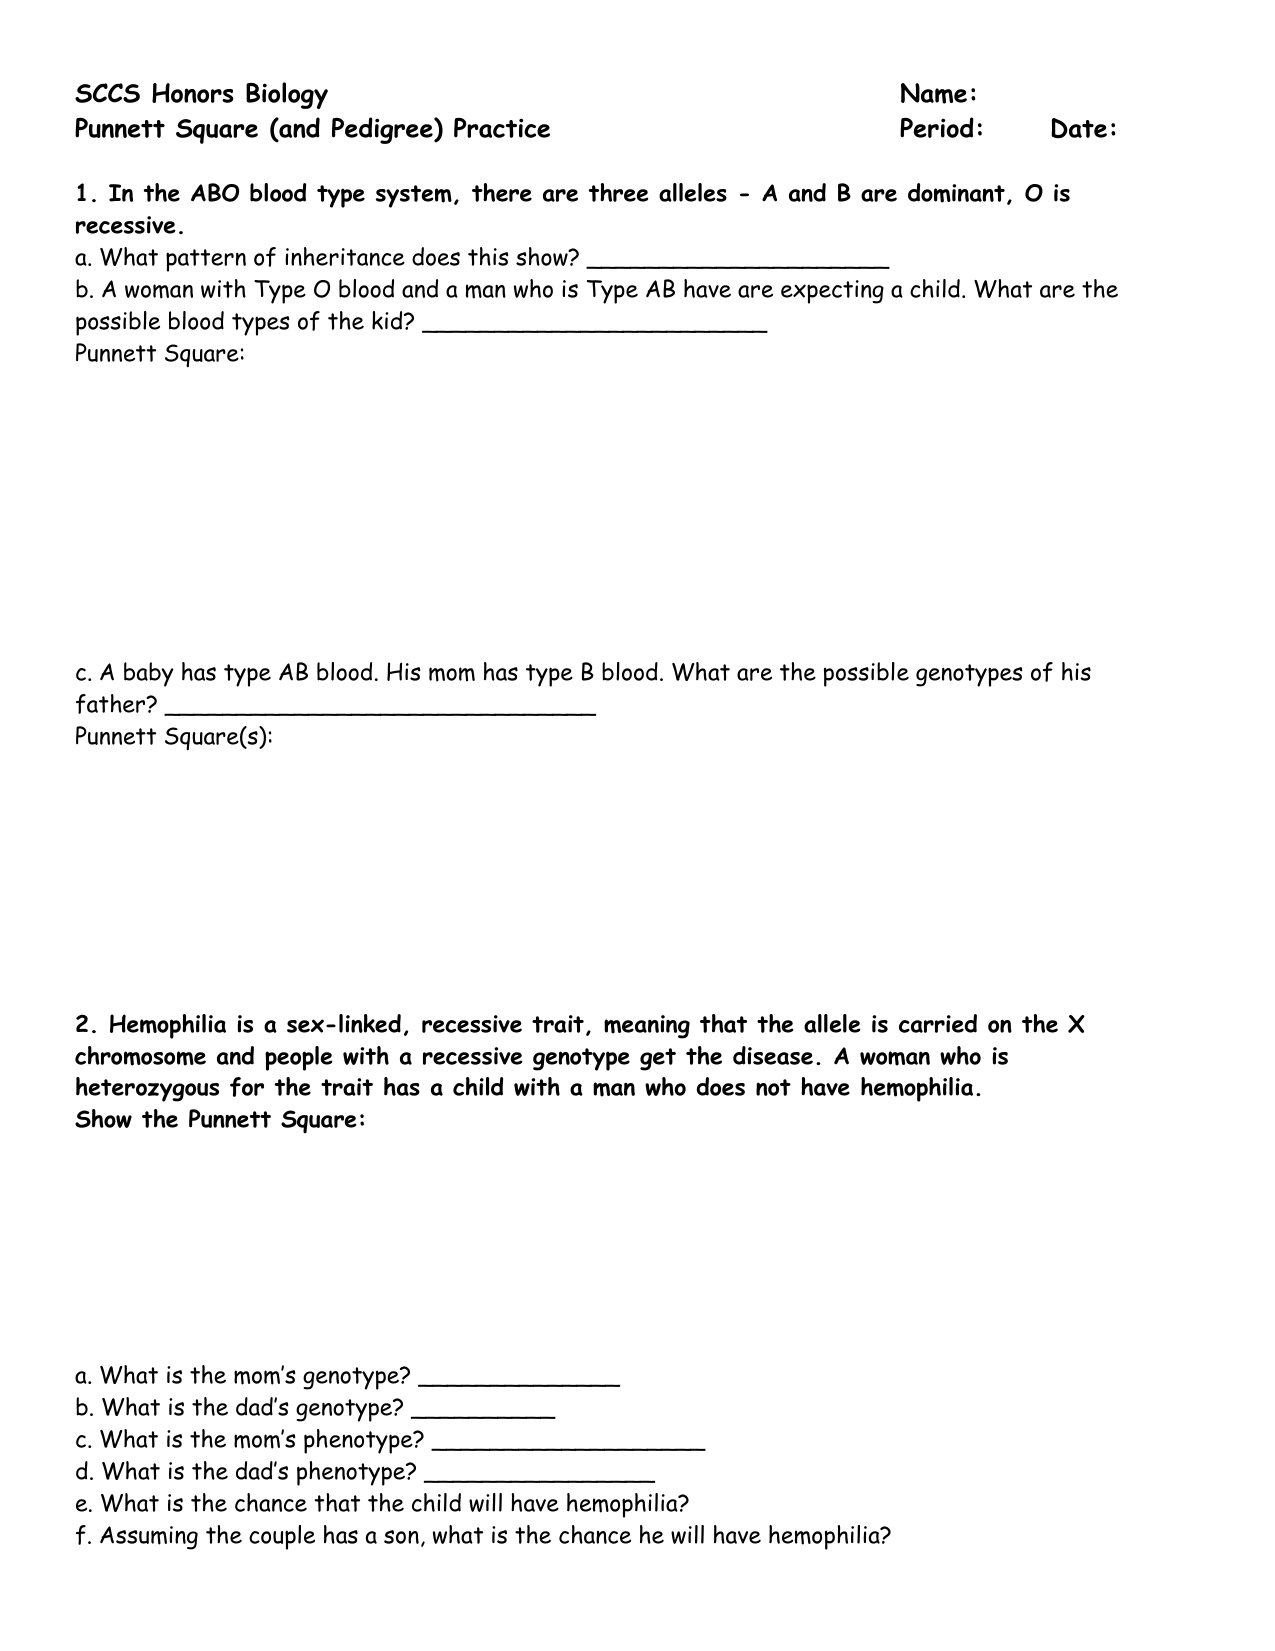 Punnett Square Practice Worksheet Answers Biology